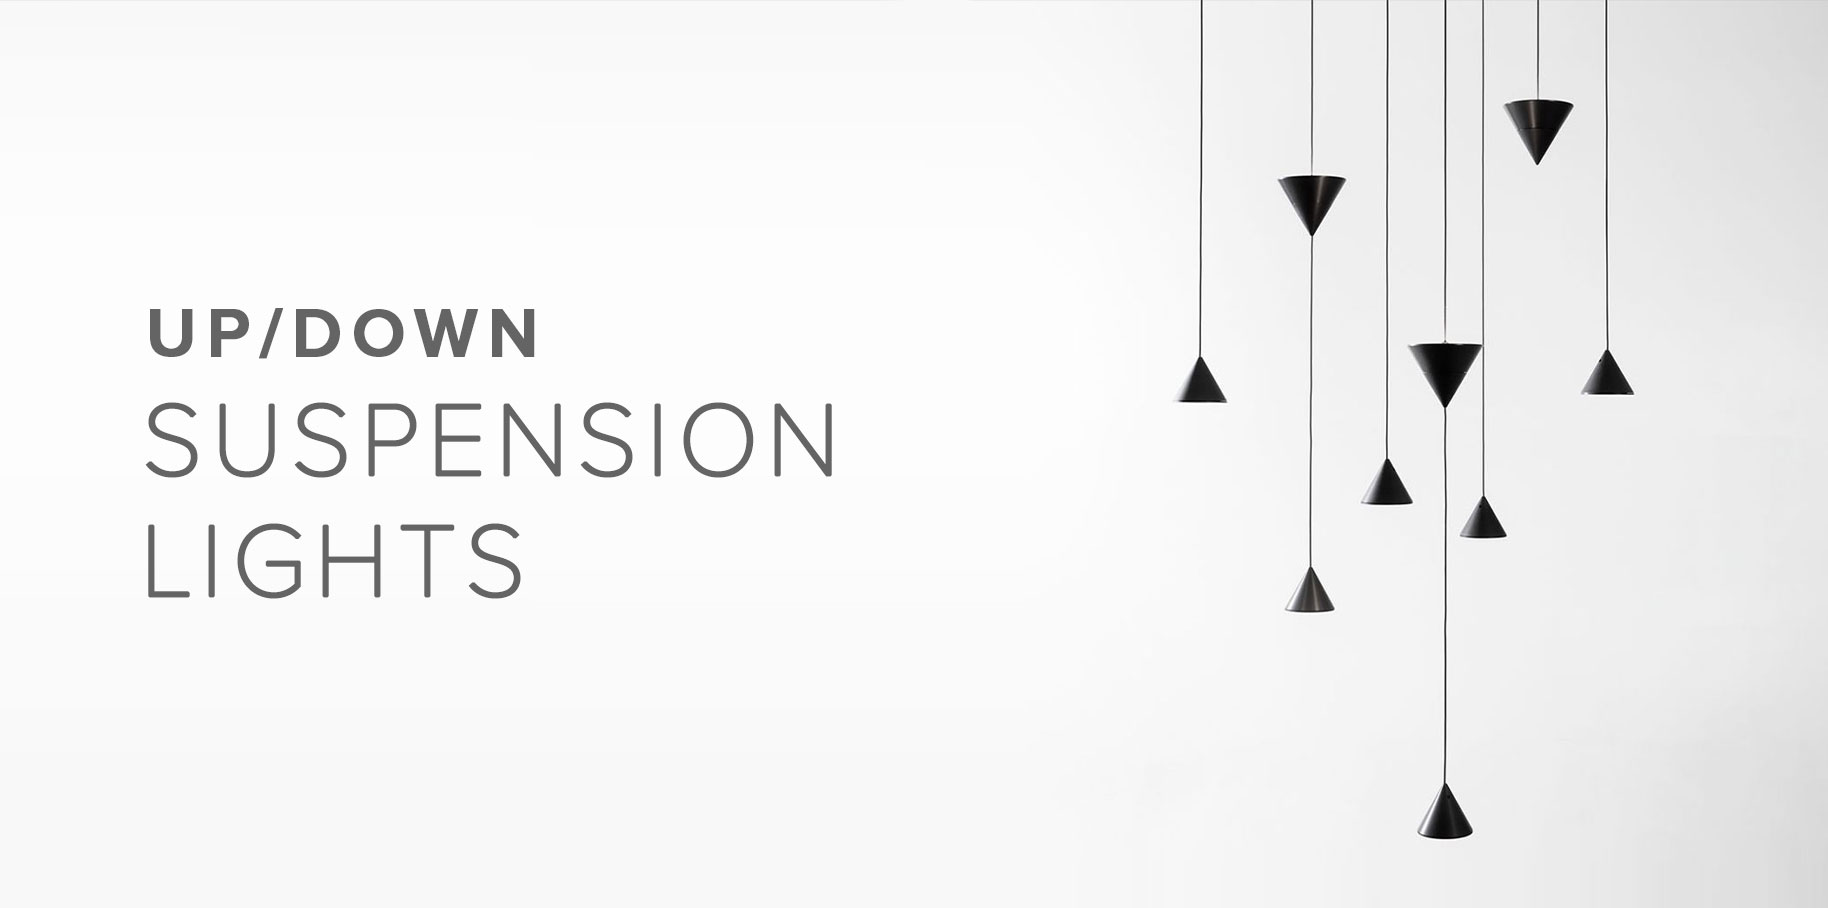 Up/Down Suspension Lights